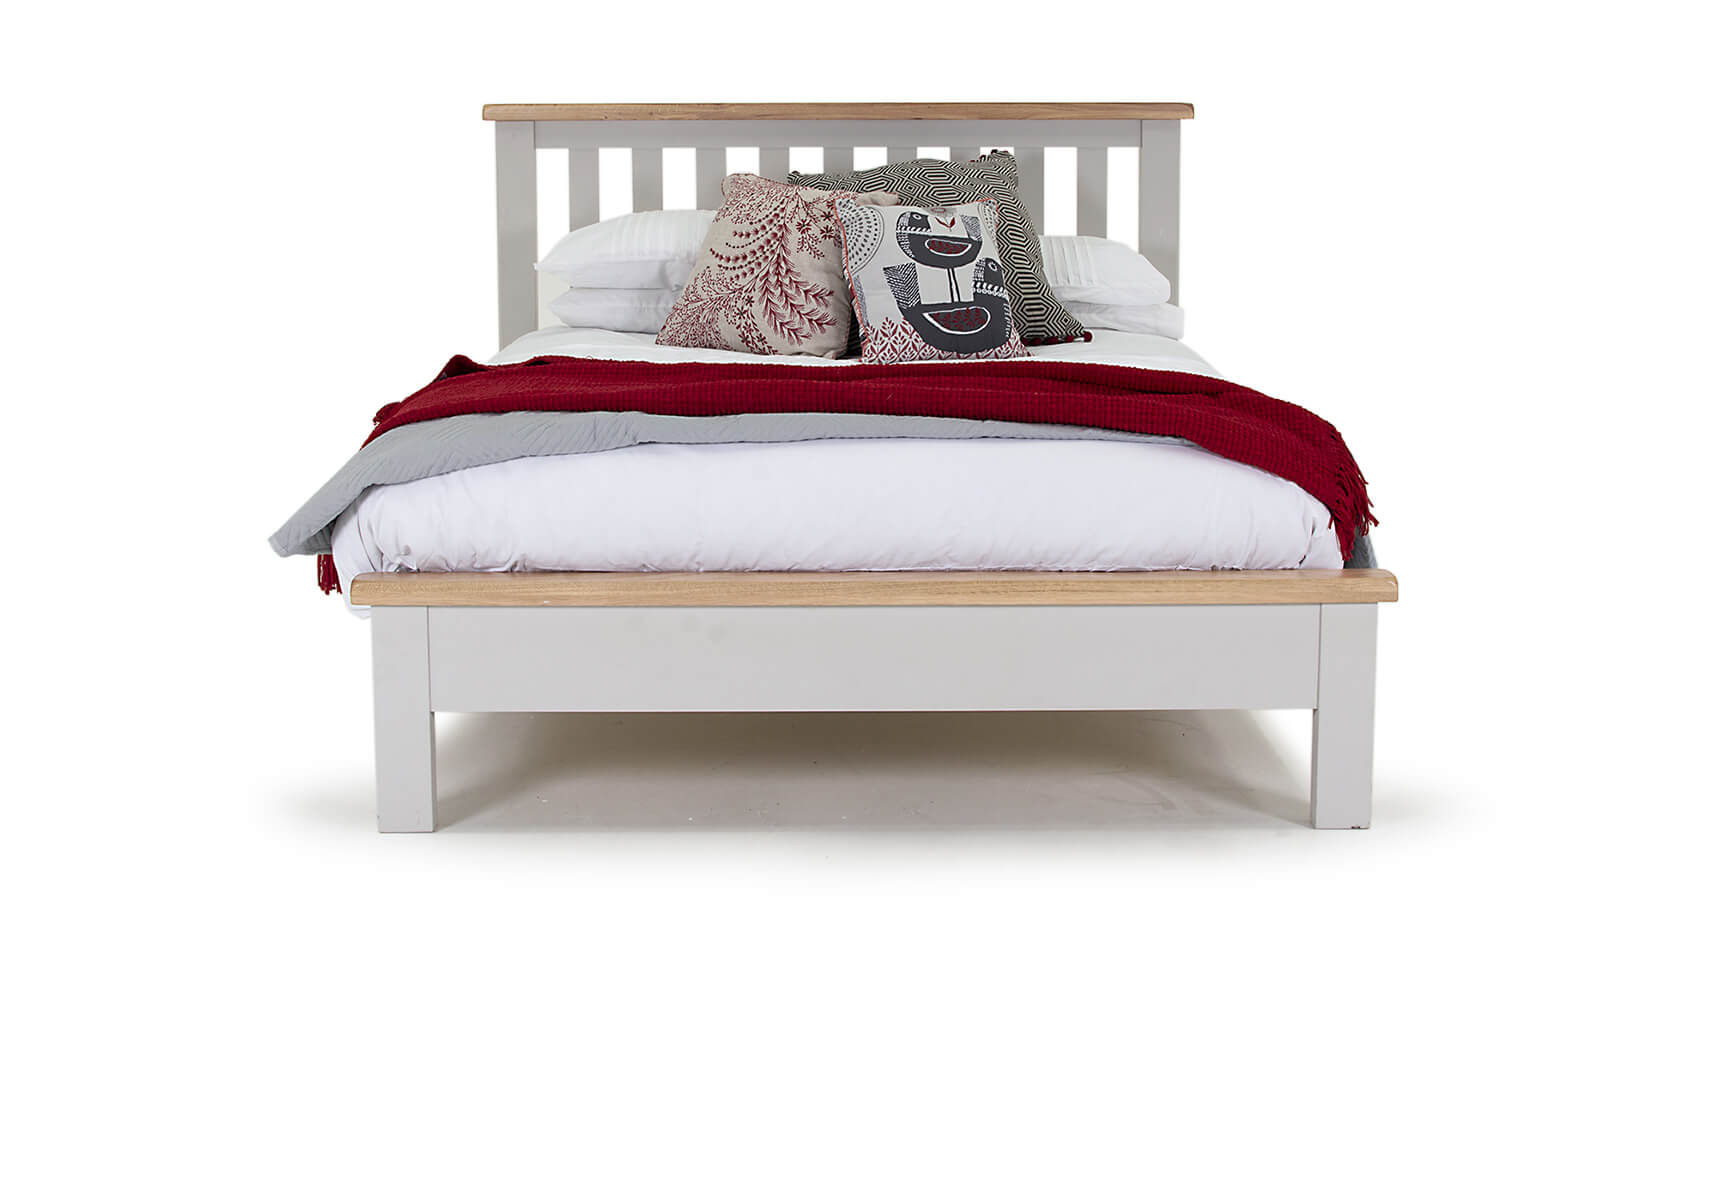 4 0 Small Double Beds